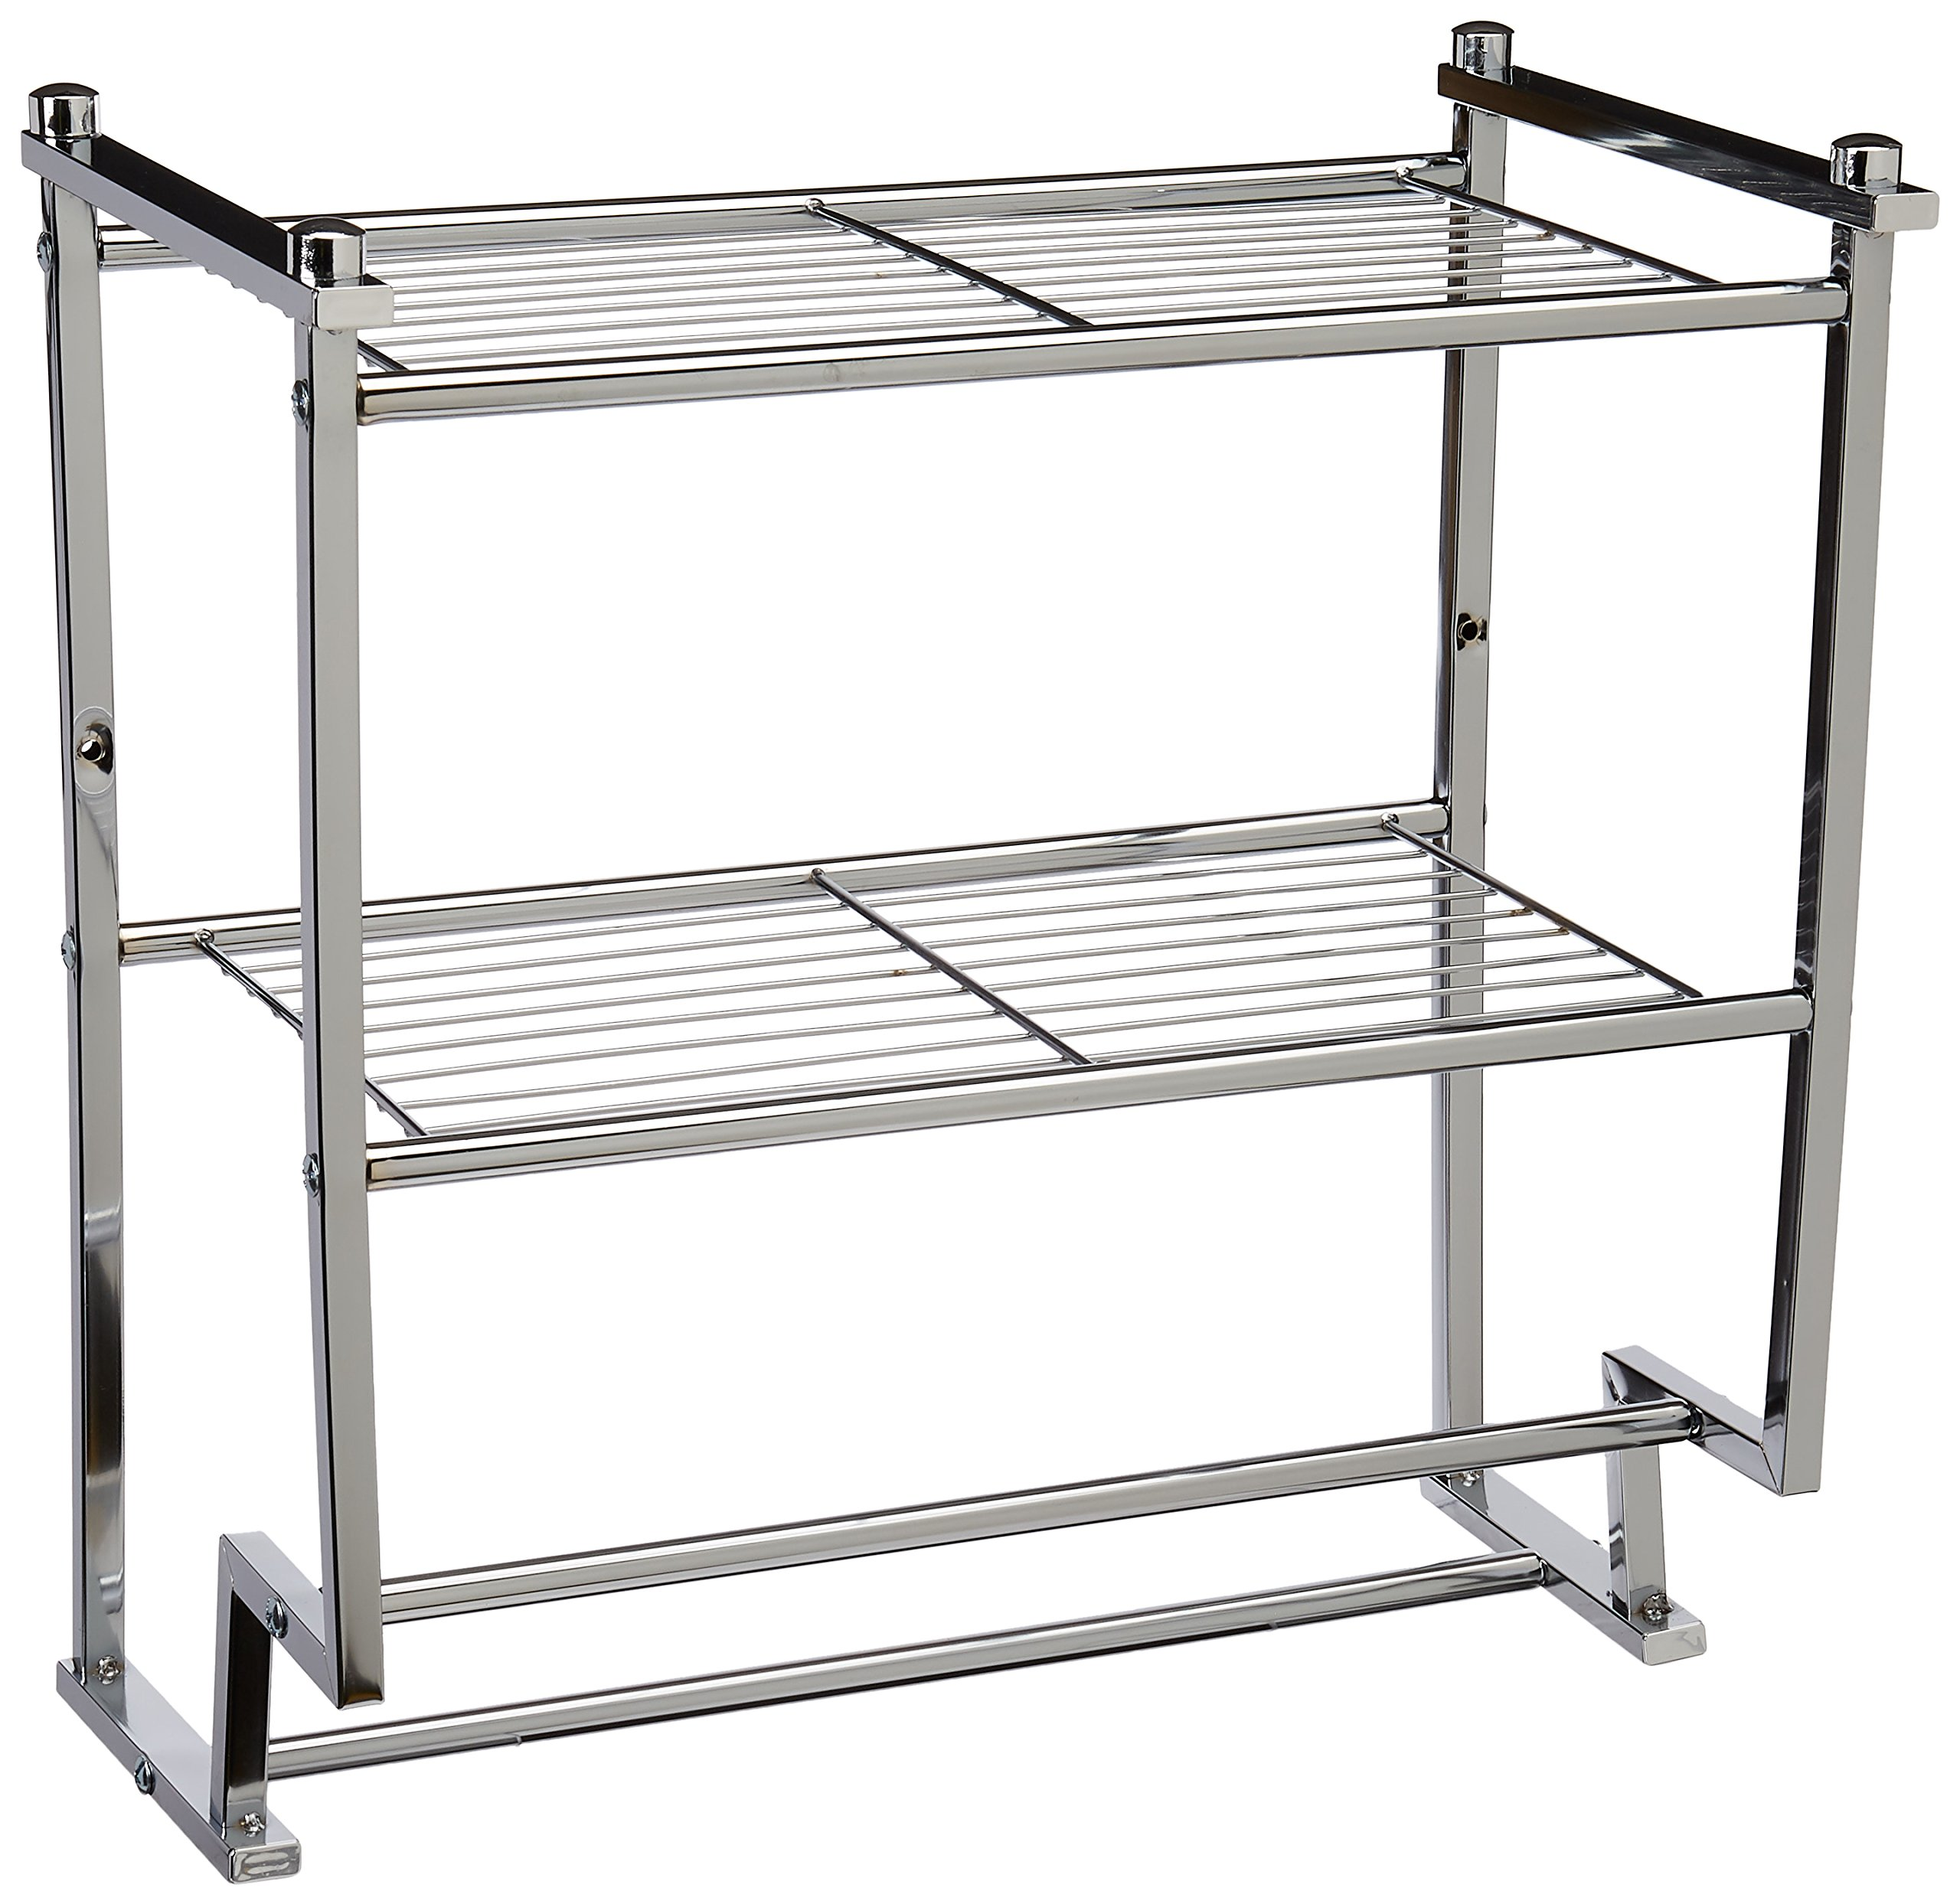 Organize It All Chrome 2 Tier Wall Mounting Bathroom Rack with Towel Bars by Organize It All